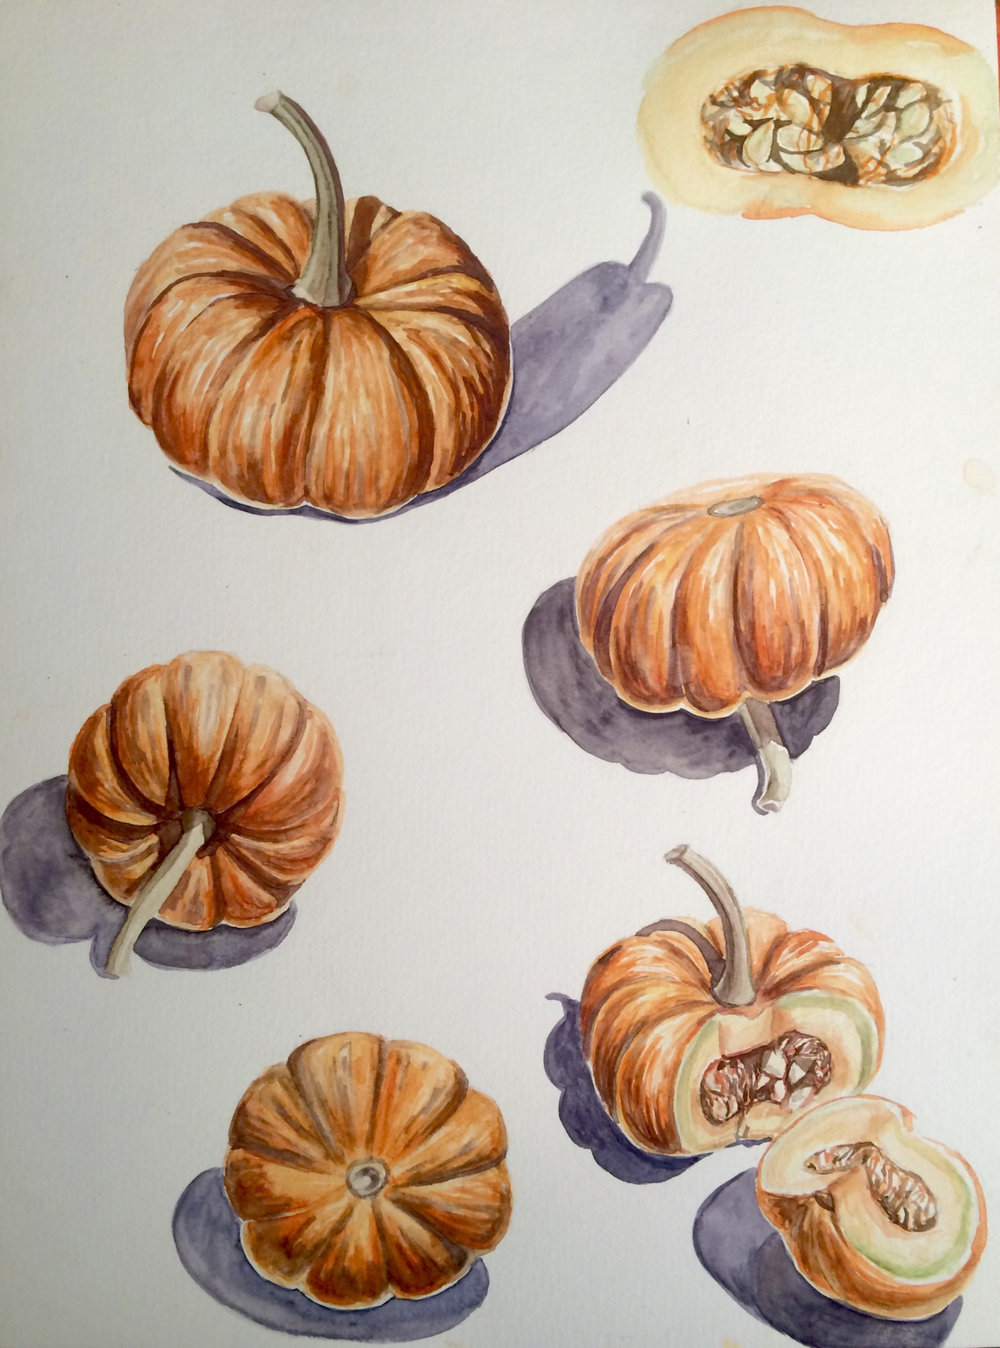 Pumpkin study   2016. Watercolor